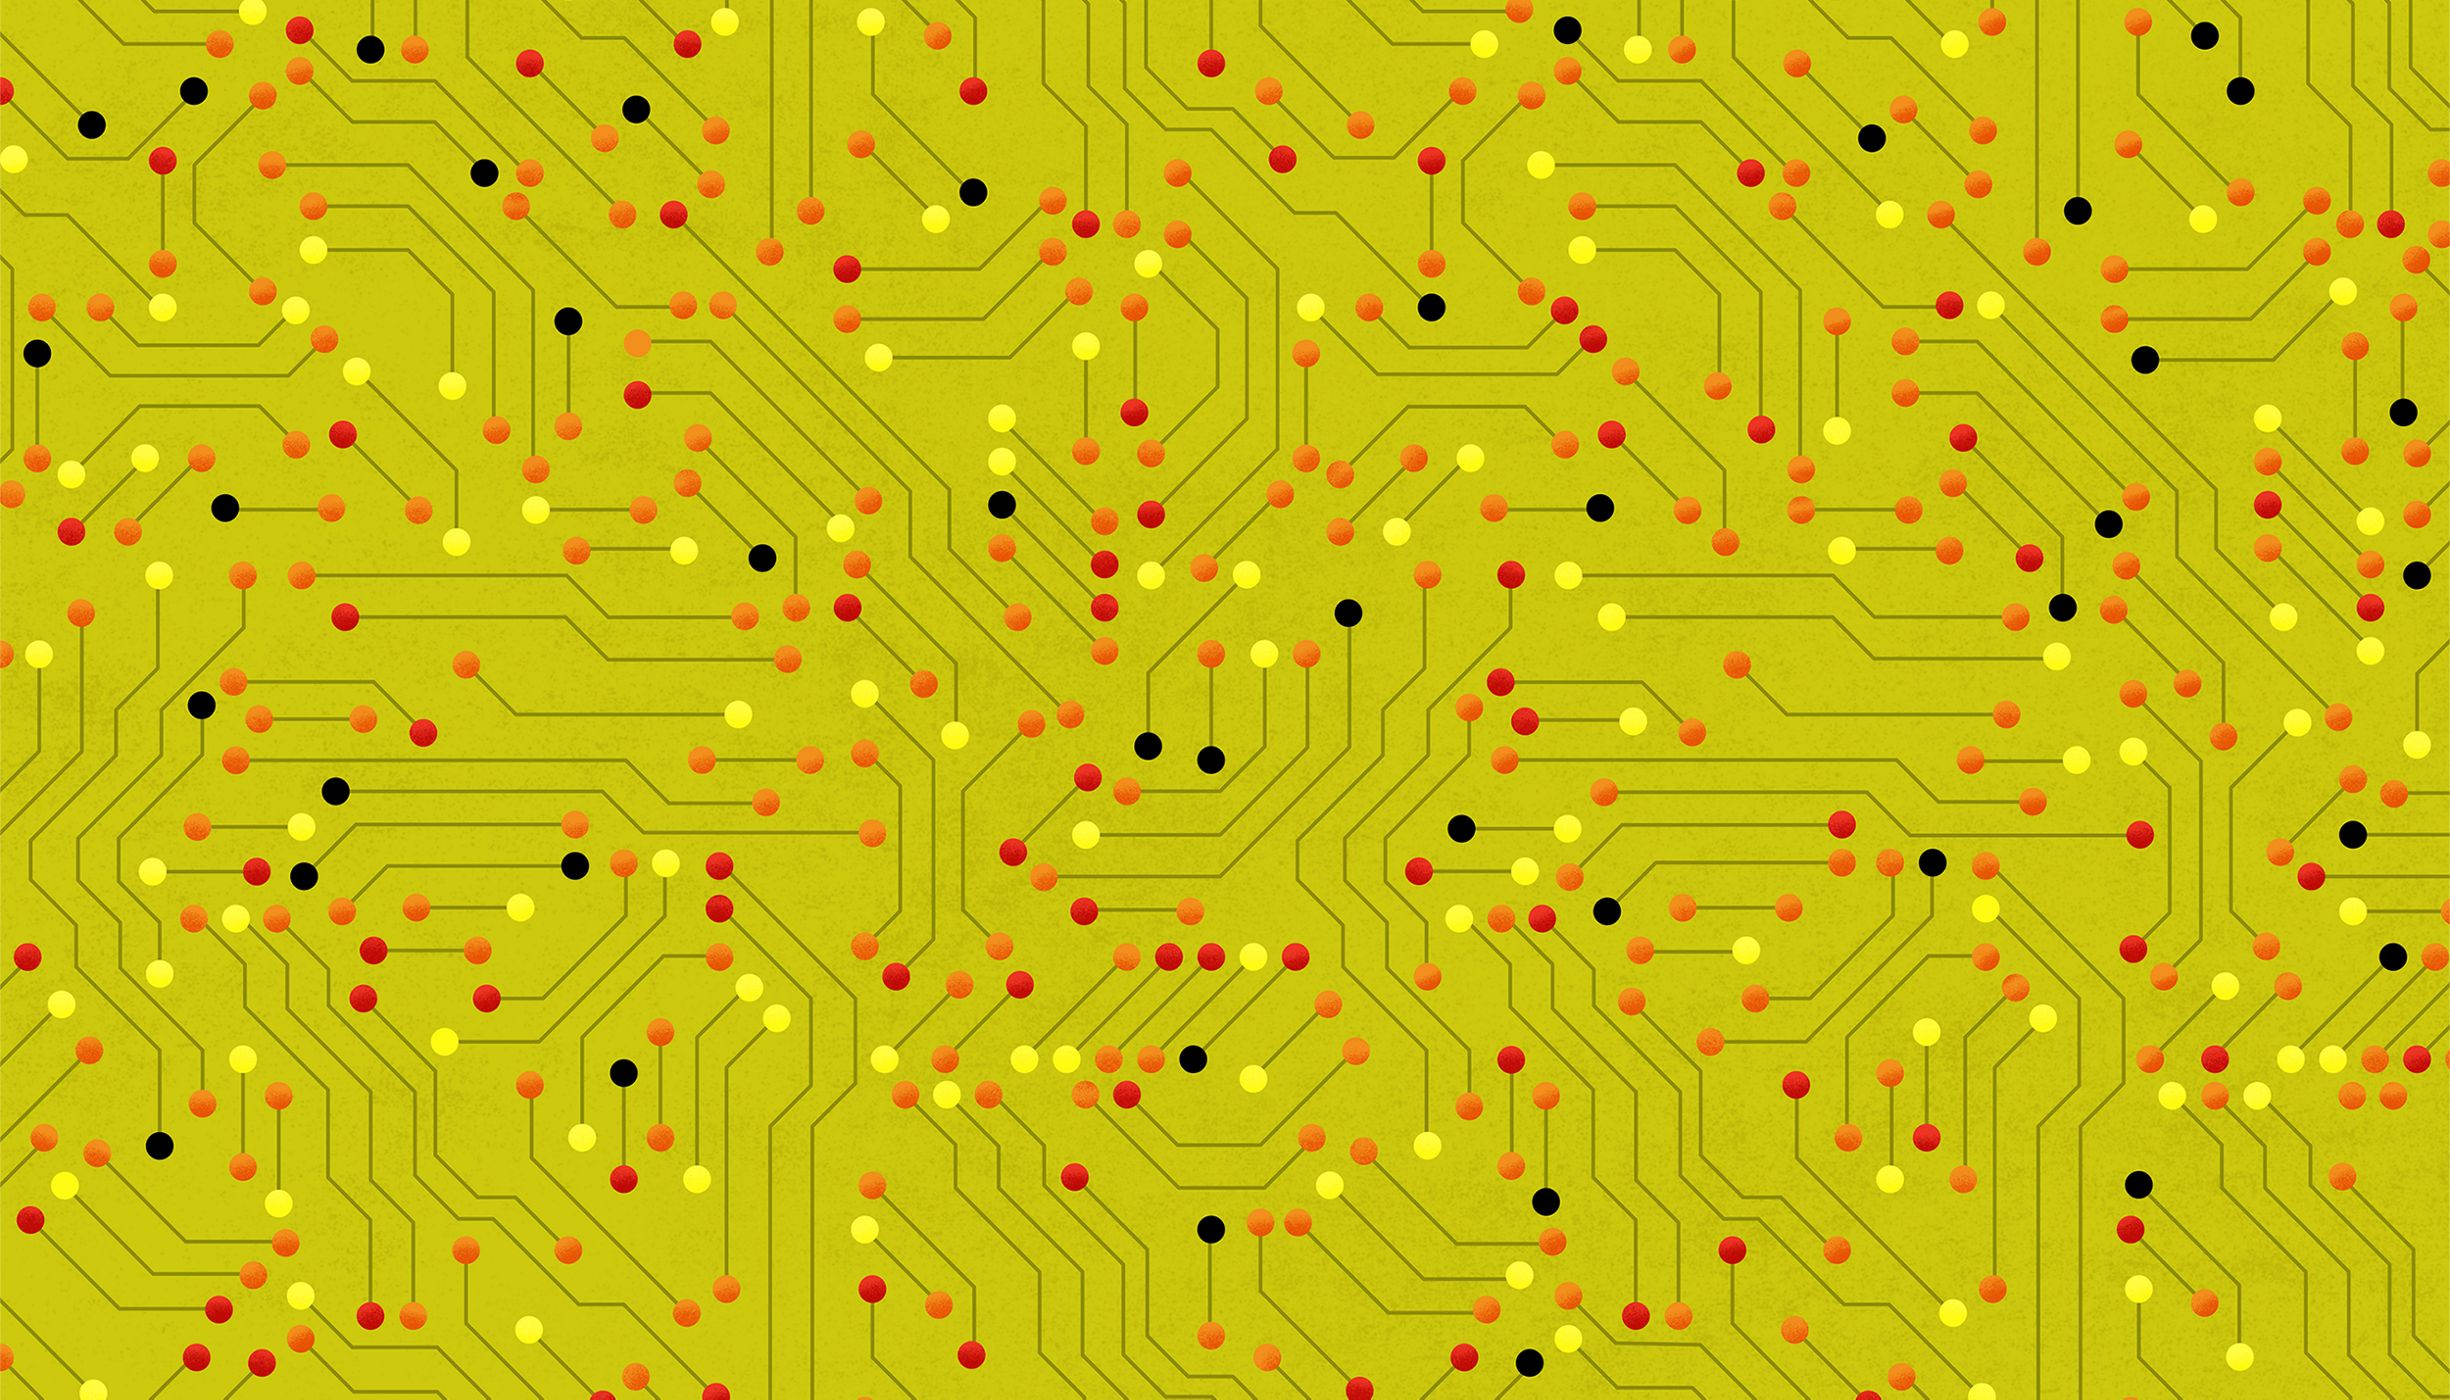 an abstract pattern based on a circuit board, with red, orange, and yellow nodes and a green background